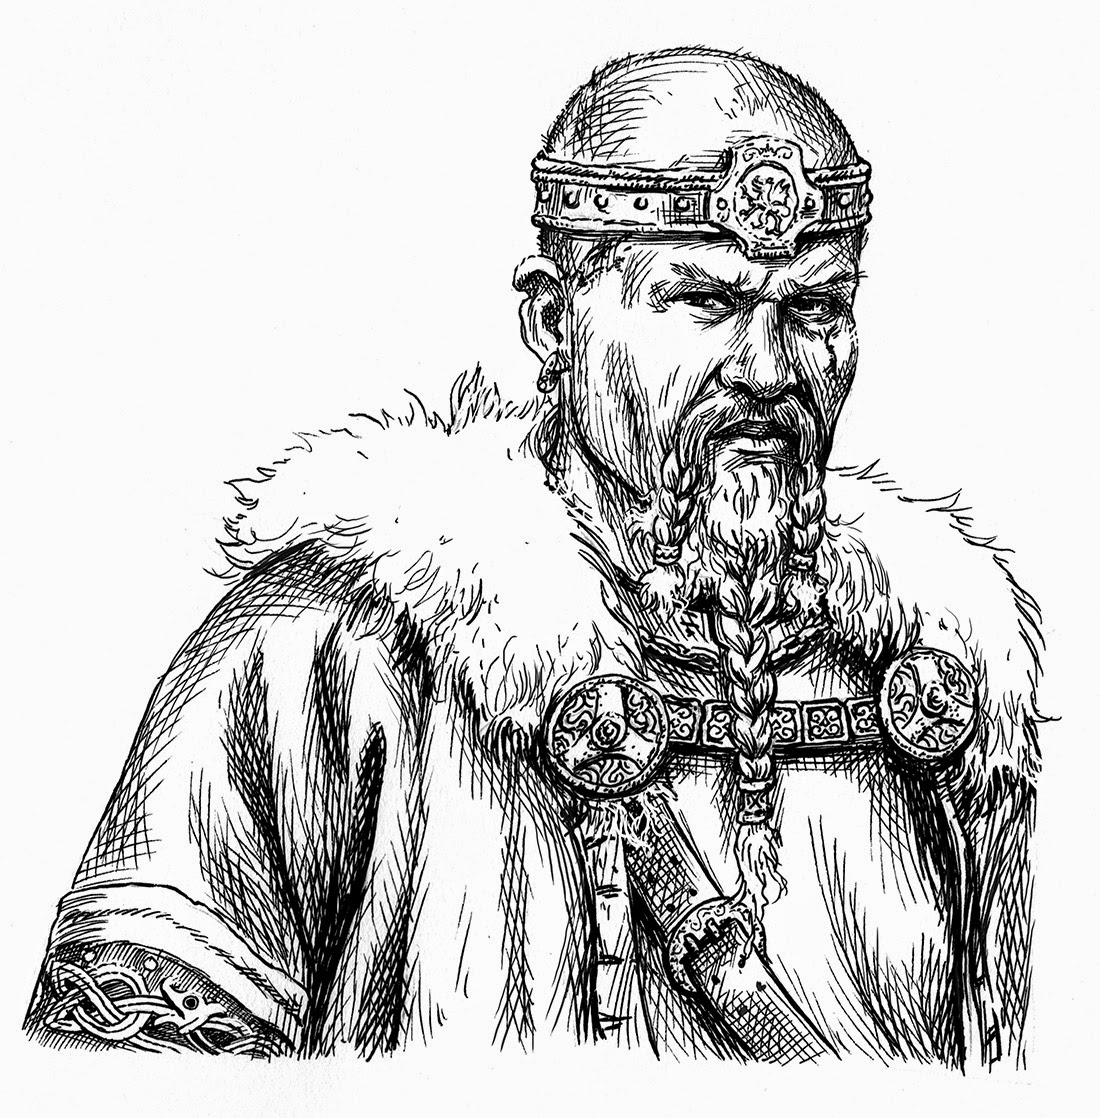 It's just a picture of Dramatic Drawing Of Medieval King